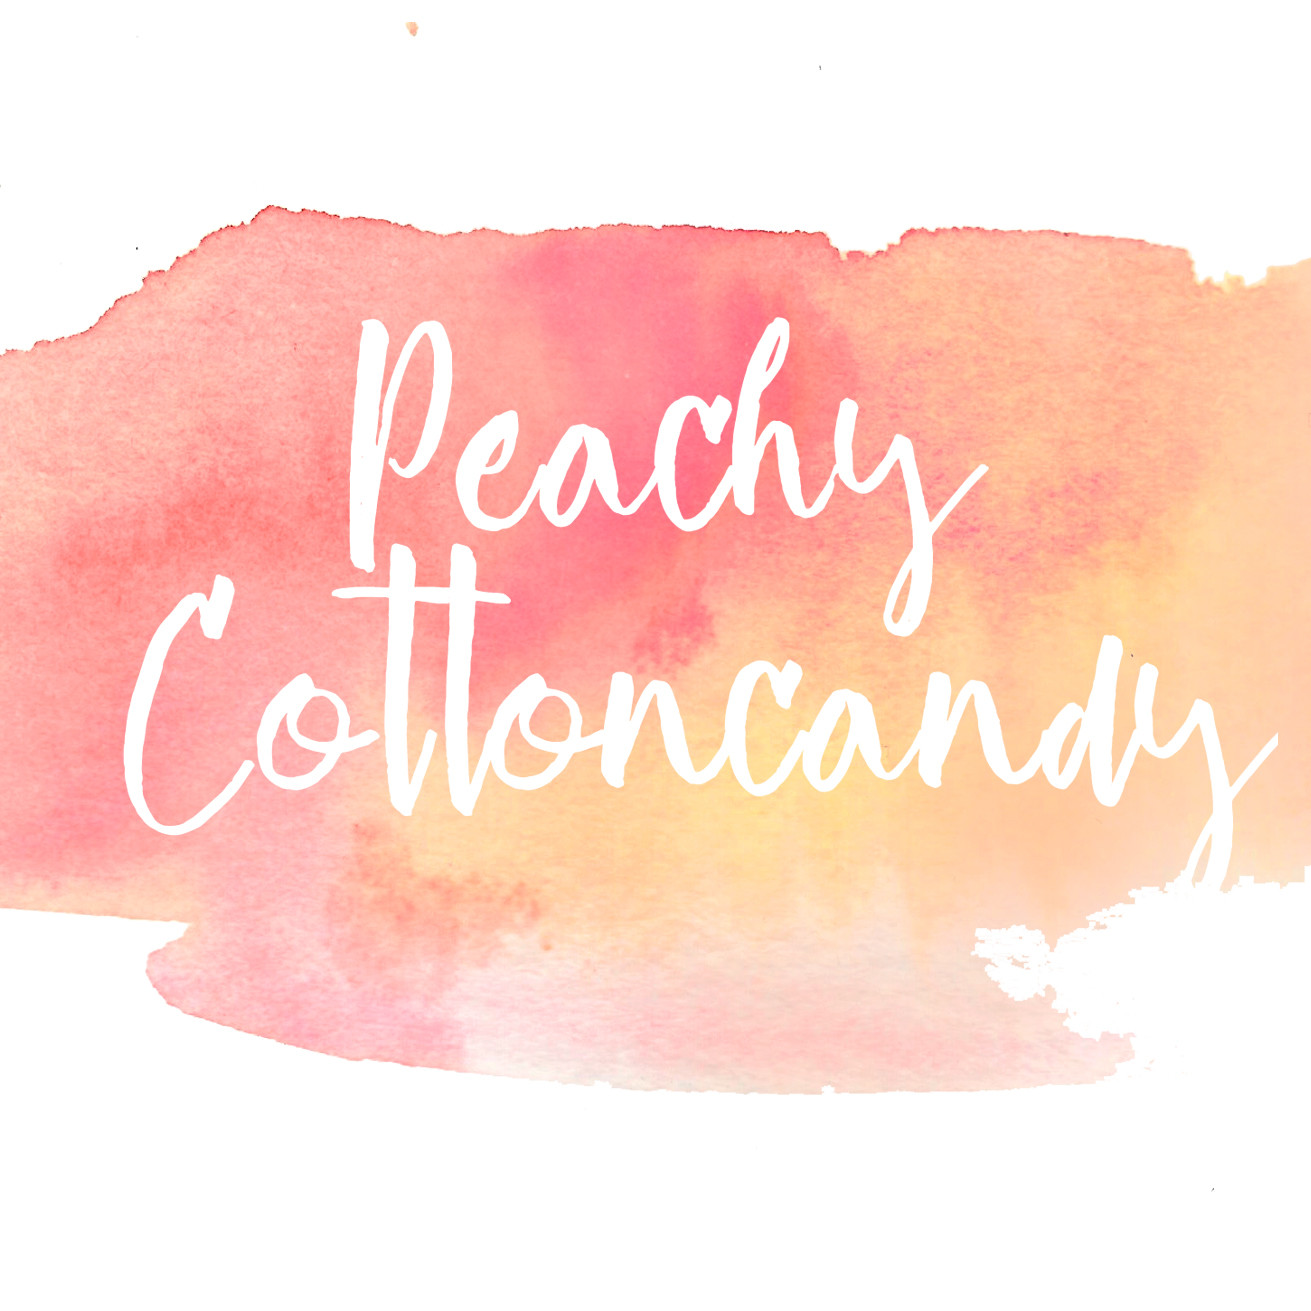 Peachycottoncandy's profile picture